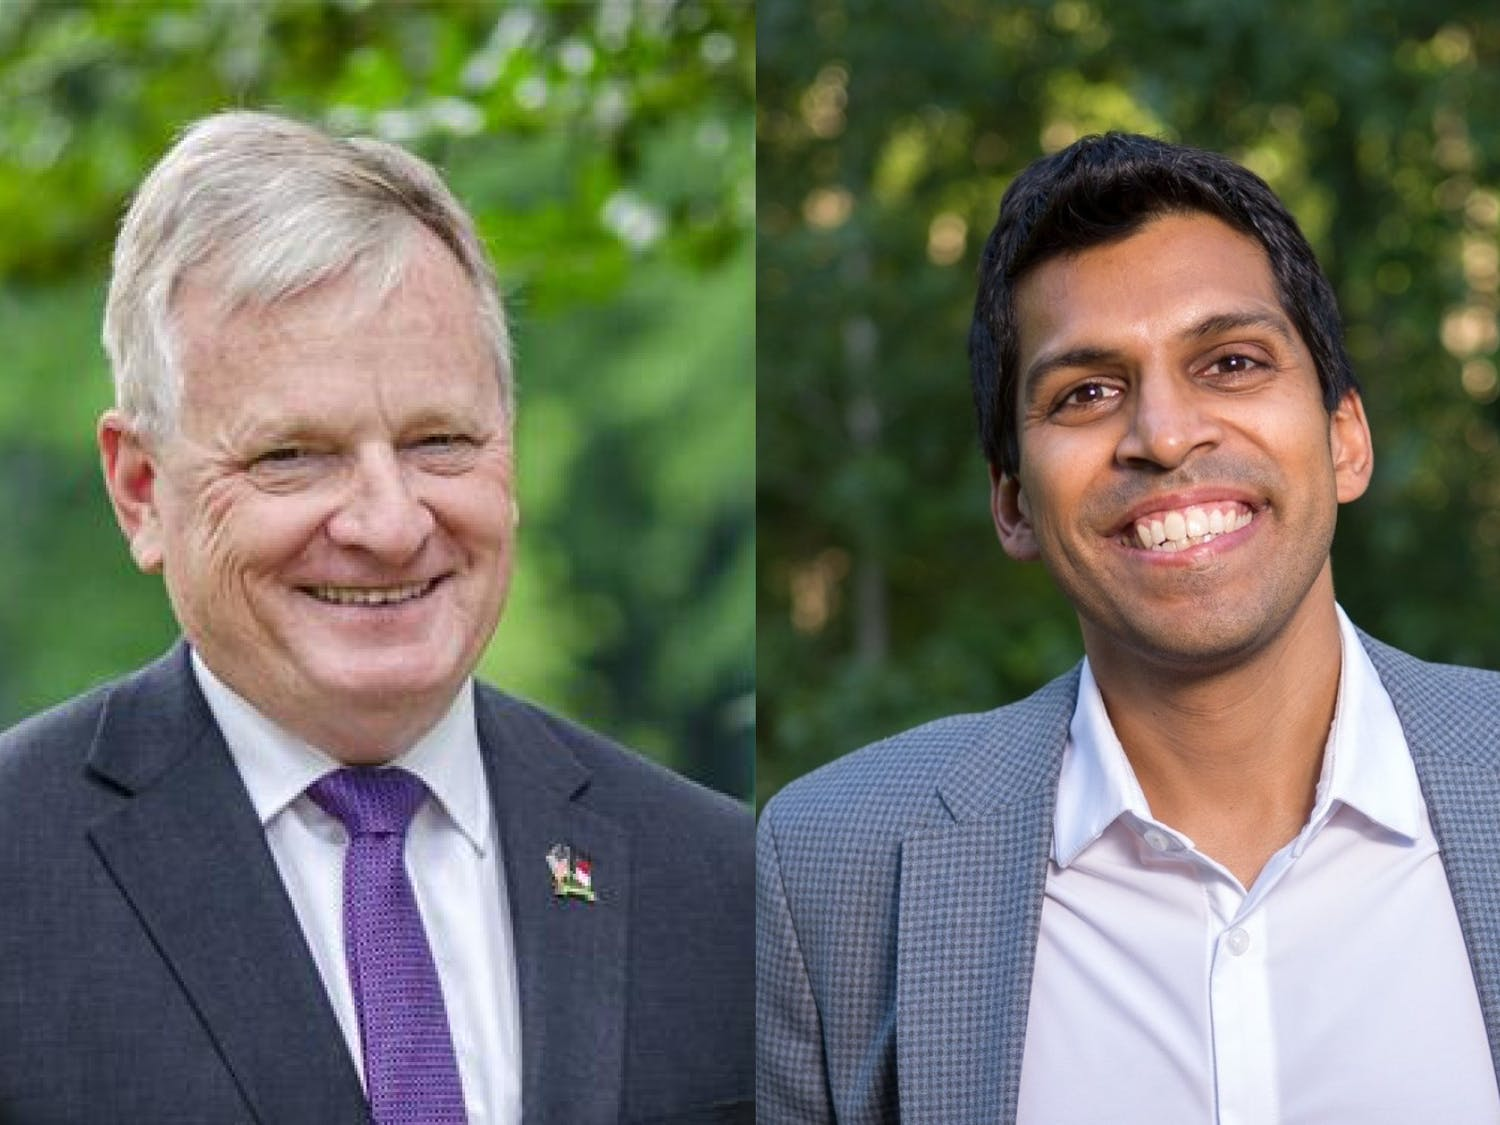 Incumbent Dale R Folwell (left), Republican, and Ronnie Chatterji, Democrat, are running for N.C. State Treasurer. Photos courtesy of Folwell and Greg Lademann.